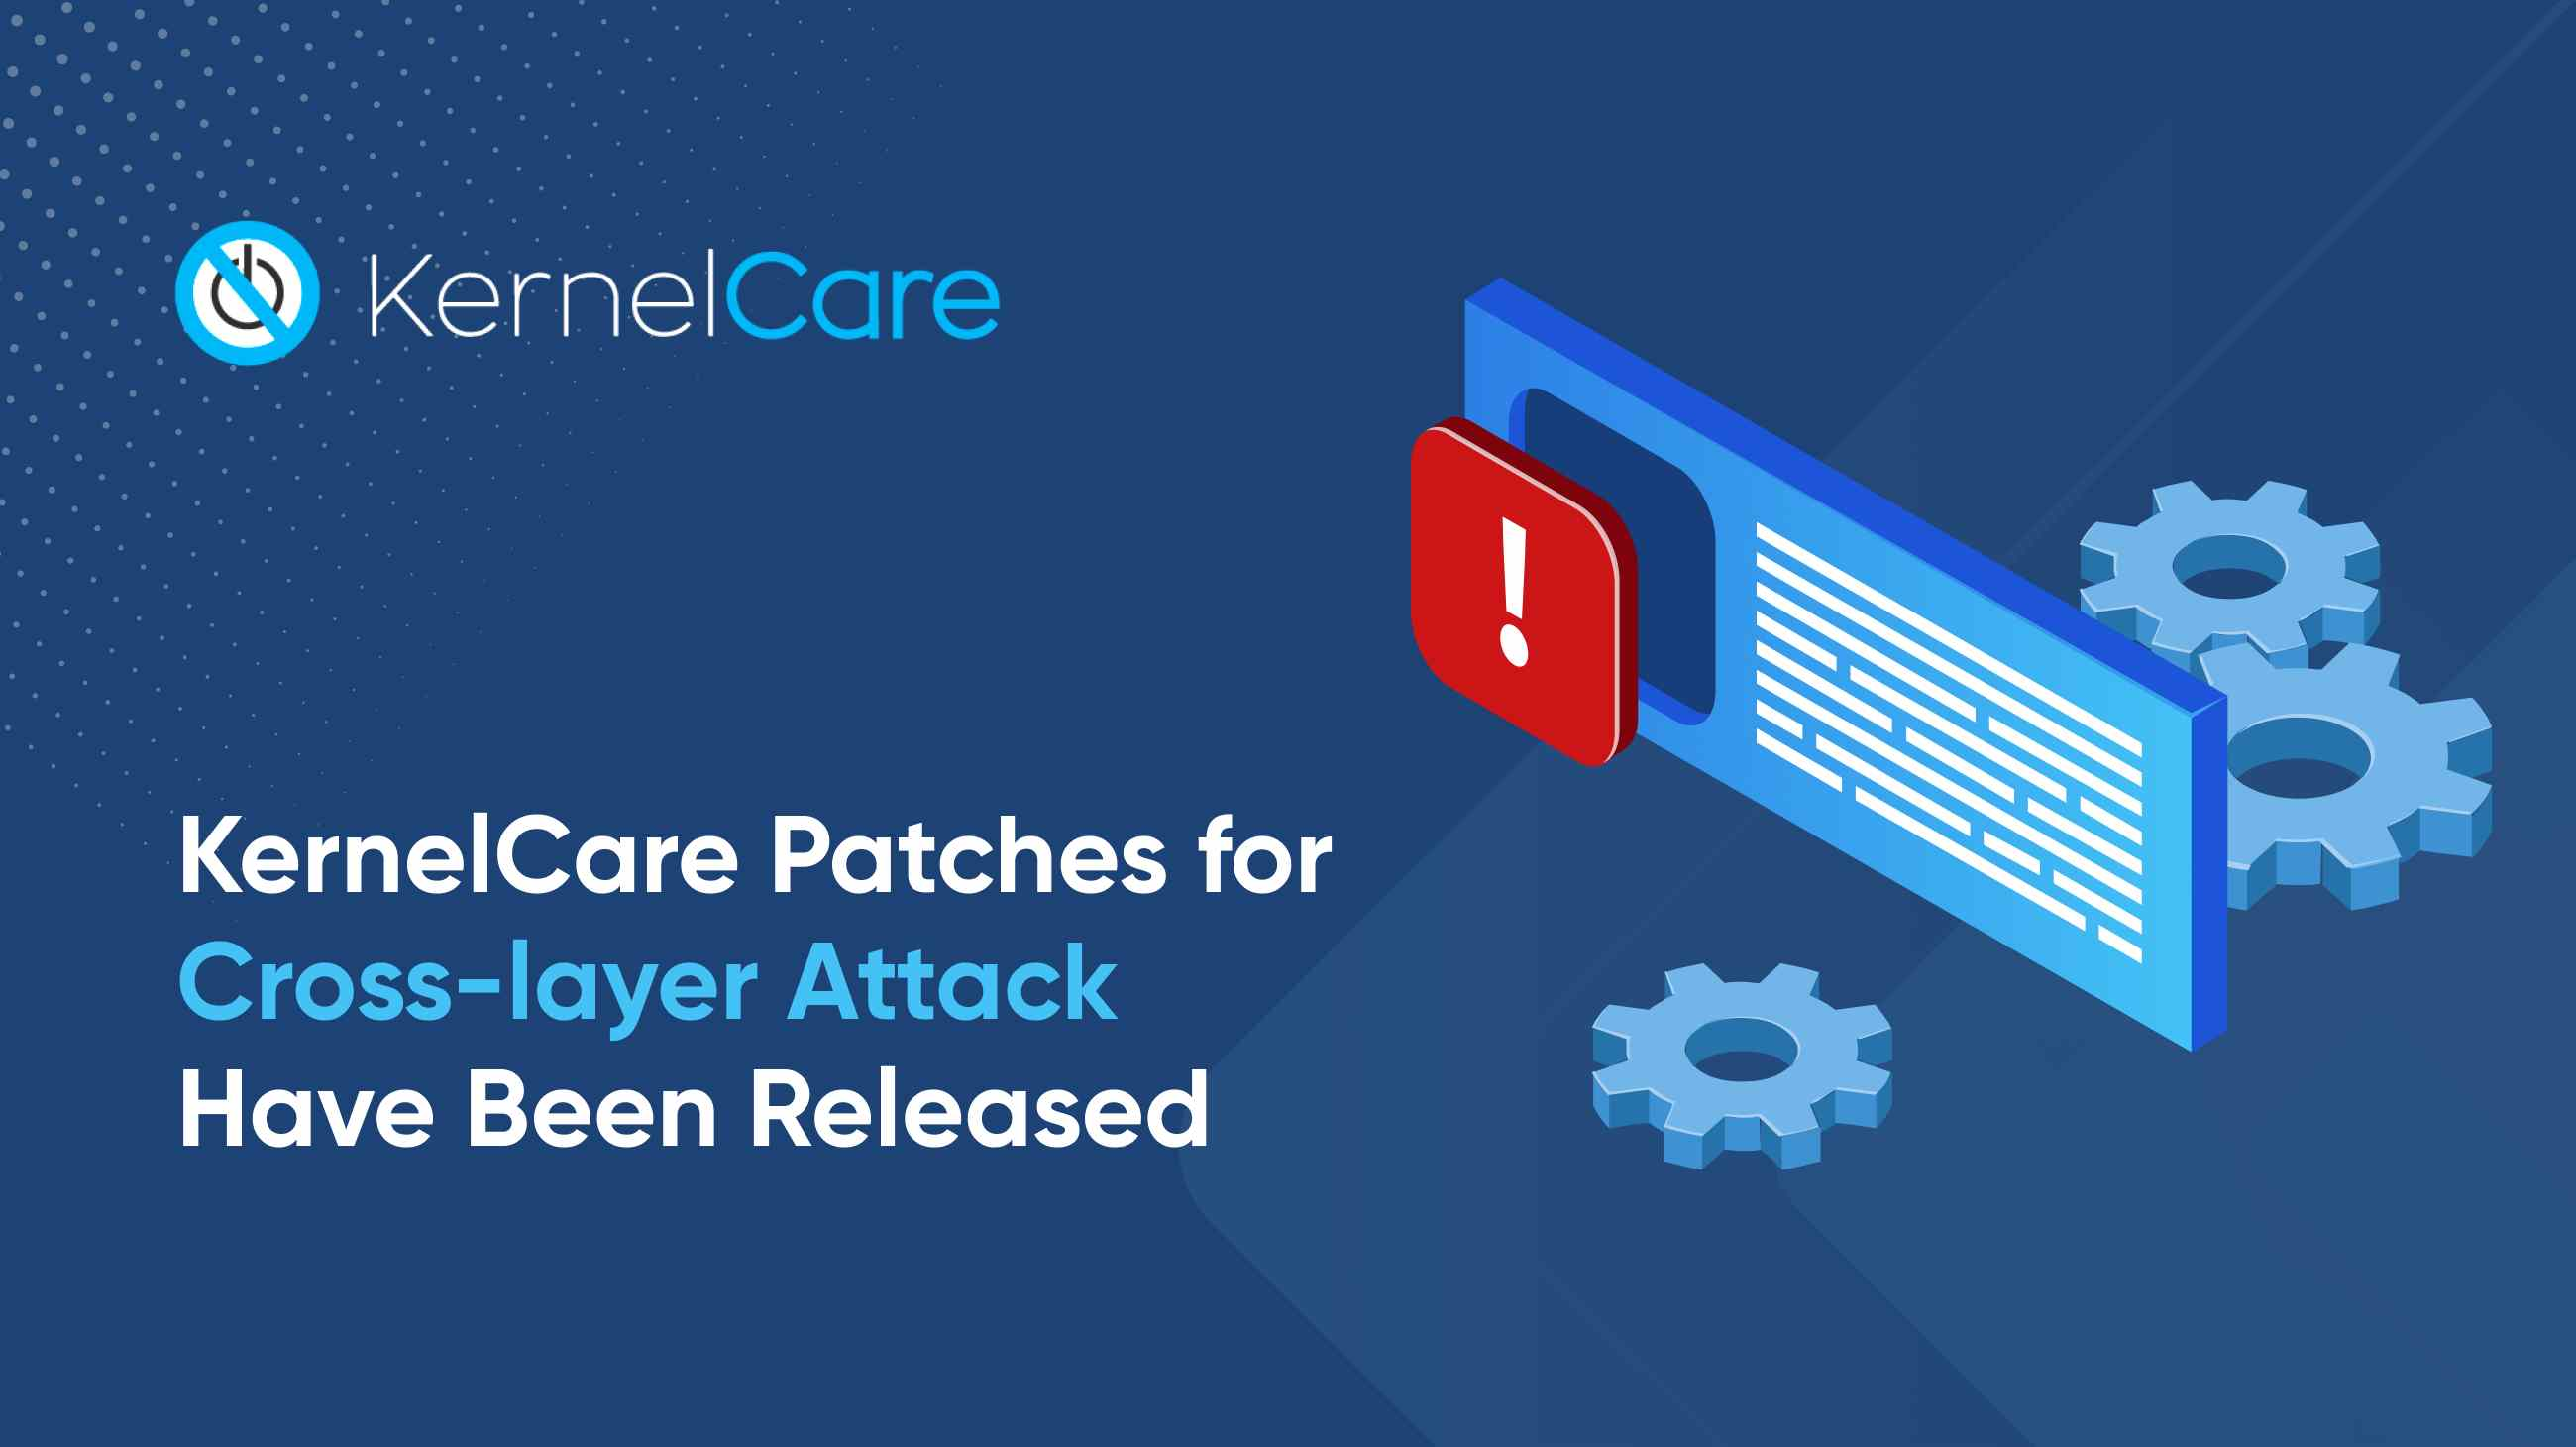 KernelCare Patches for Cross-layer Attack Have Been Released